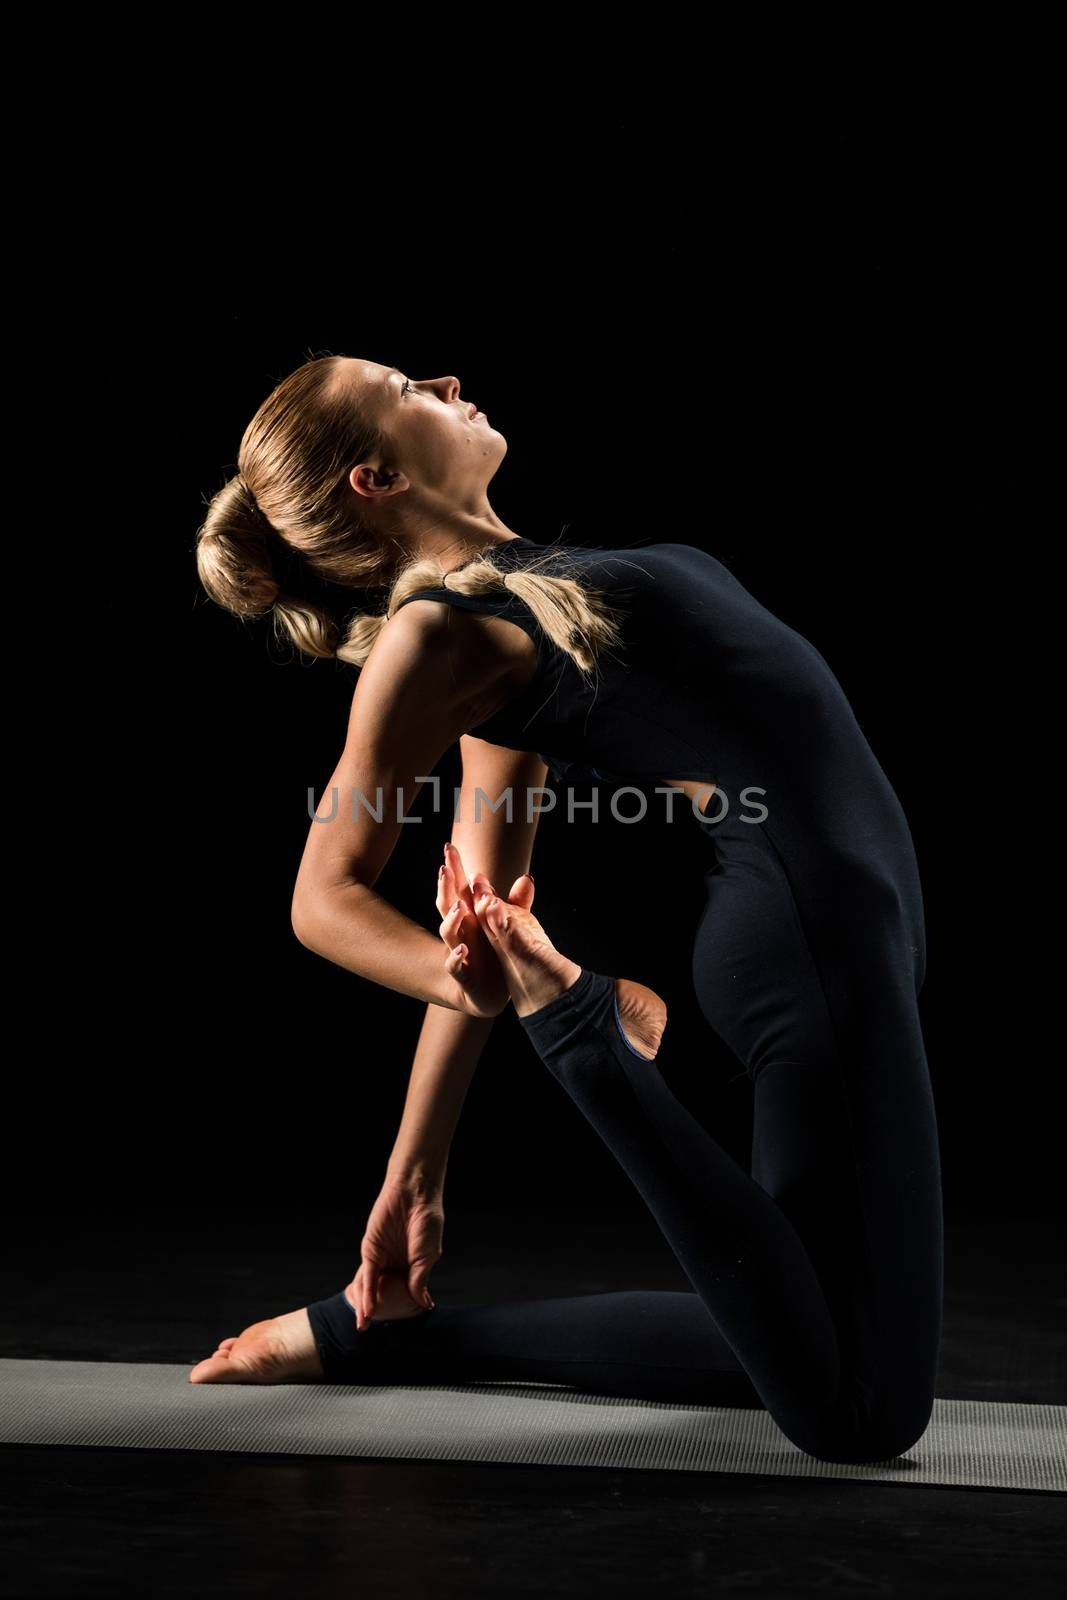 Woman practicing yoga and stretching on yoga mat